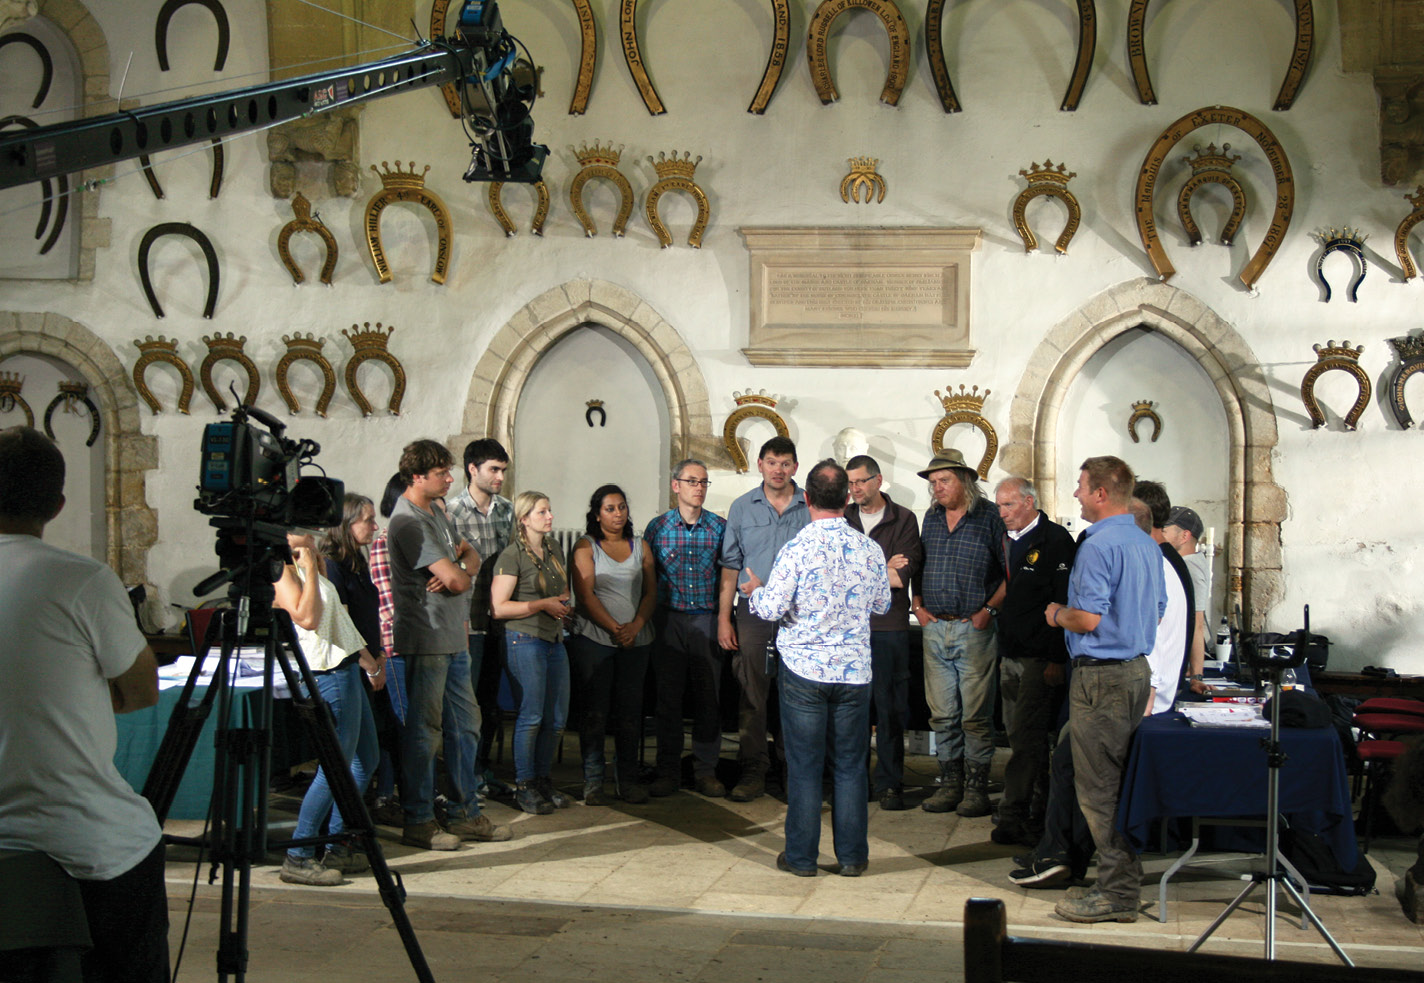 right The team being directed inside the magnificent 12th-century great hall at Oakham Castle for the final shot of an episode in the forthcoming season 20. The ornate horseshoes stem from a tradition dating back to Edward IV in 1470 that peers of the realm should donate one when they visit. A local blacksmith cast a special horseshoe in honour of Time Team's visit (inset).